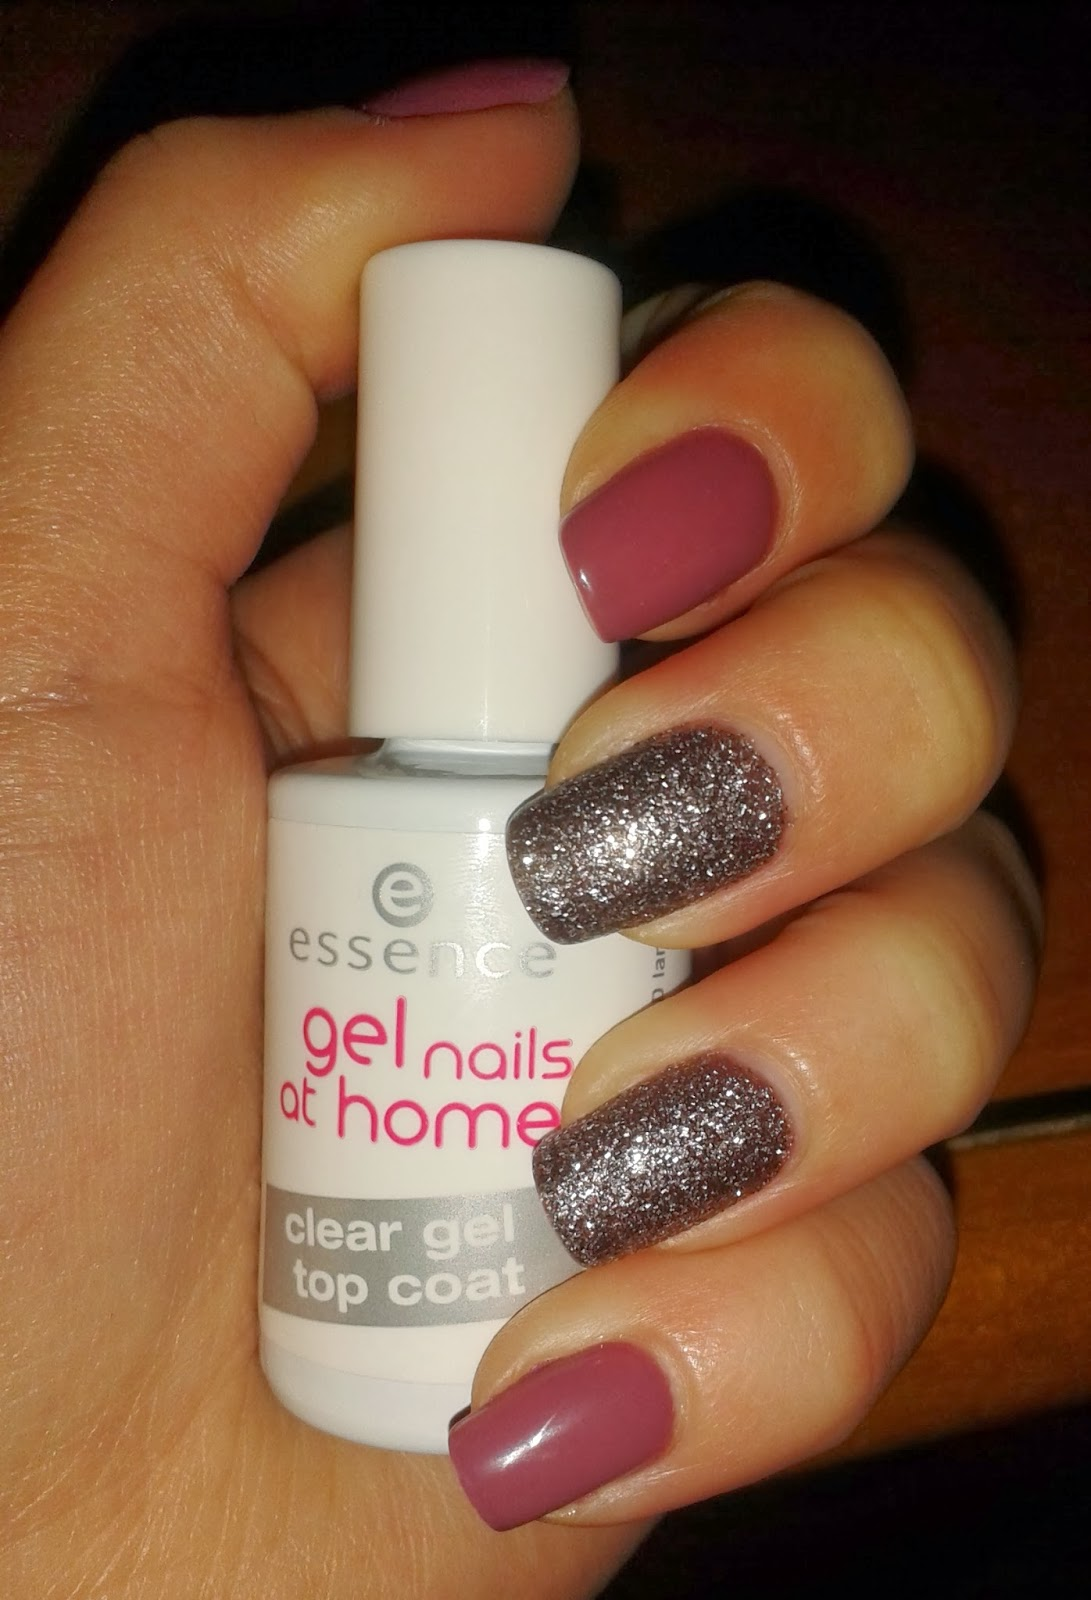 Review | Essence Gel Nails At Home Clear Gel Top Coat - Every Beauty ...